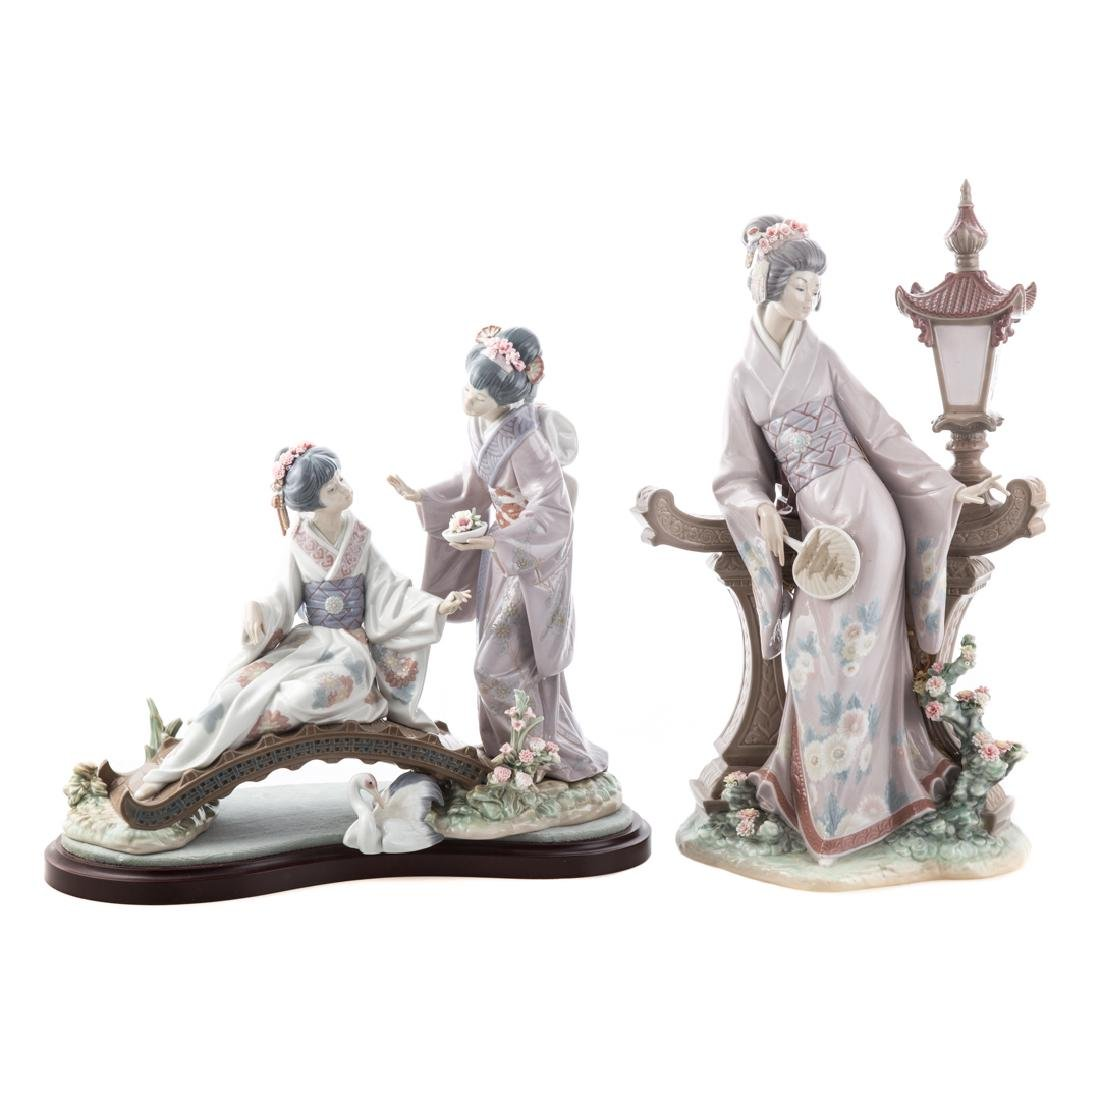 Two large Lladro porcelain groups